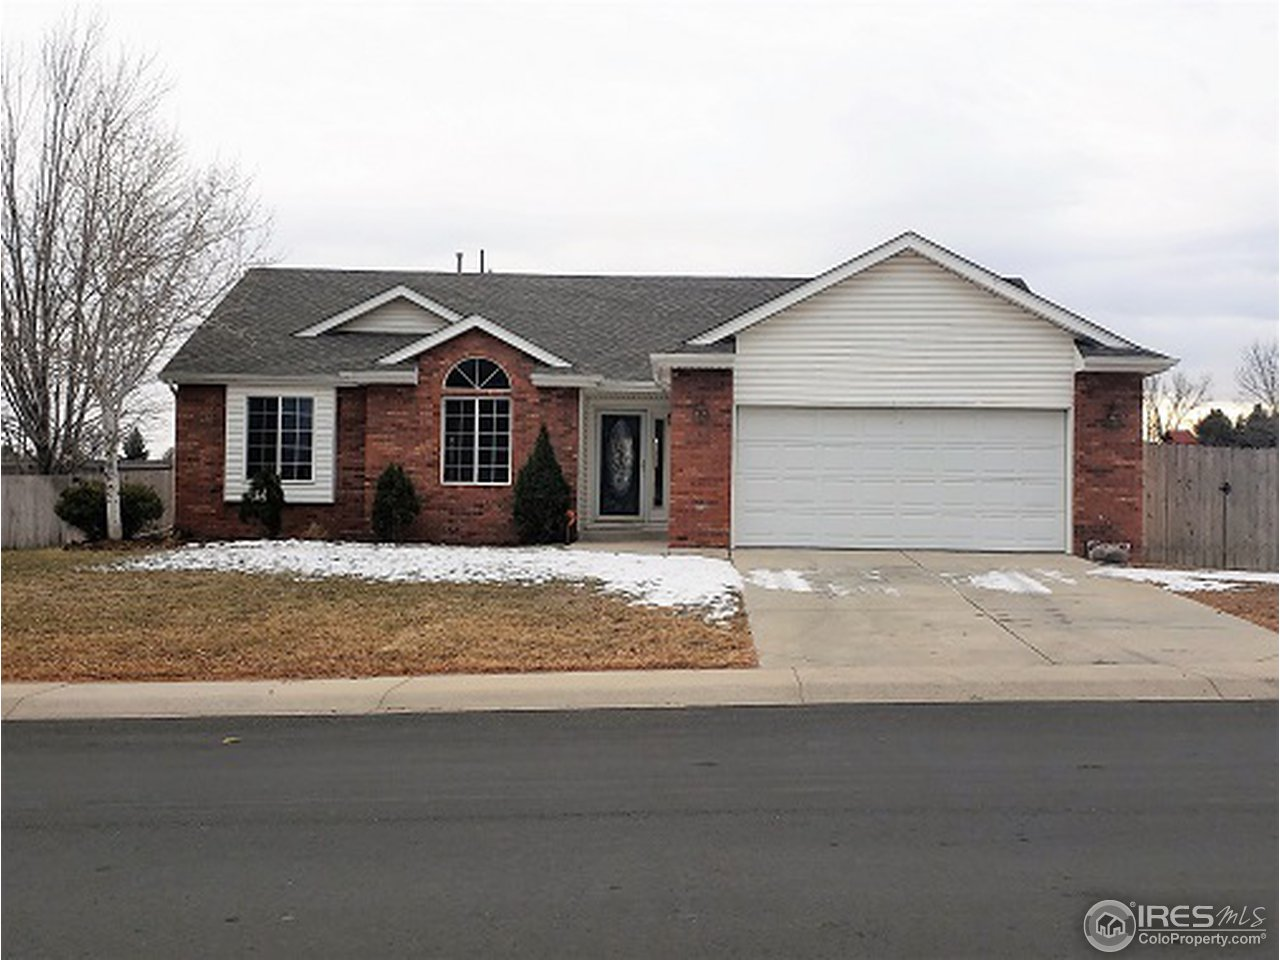 4104 W 17th St, Greeley CO 80634